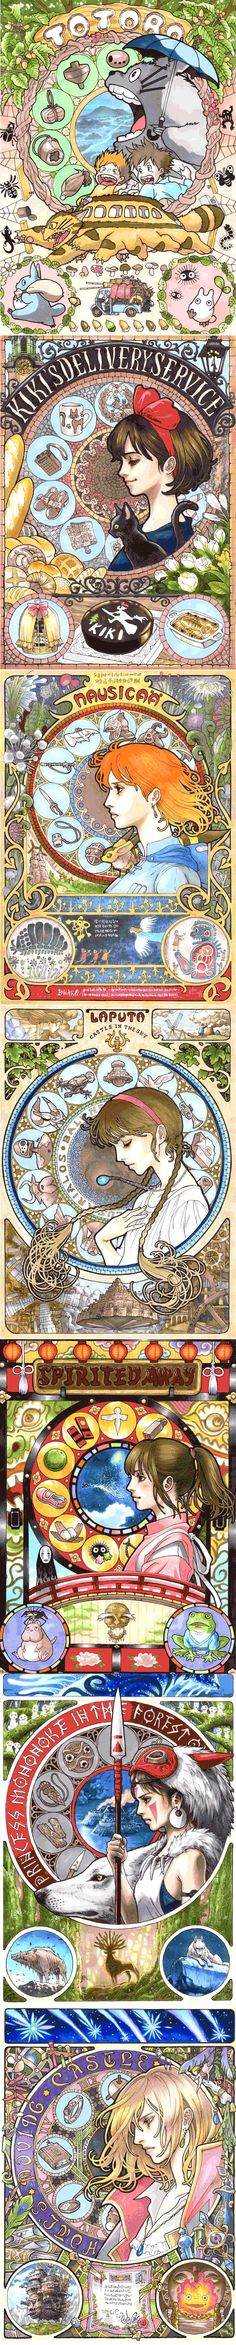 Pixiv user marlboro creates richly detailed portraits of the characters from Hayao Miyazaki& films. Each art nouveau-flavored illustration is packed with images and symbols from each movie. Hayao Miyazaki, Totoro, Manga Anime, Anime Art, Manga Girl, Art Nouveau, Art Studio Ghibli, Studio Ghibli Movies, Anime Plus